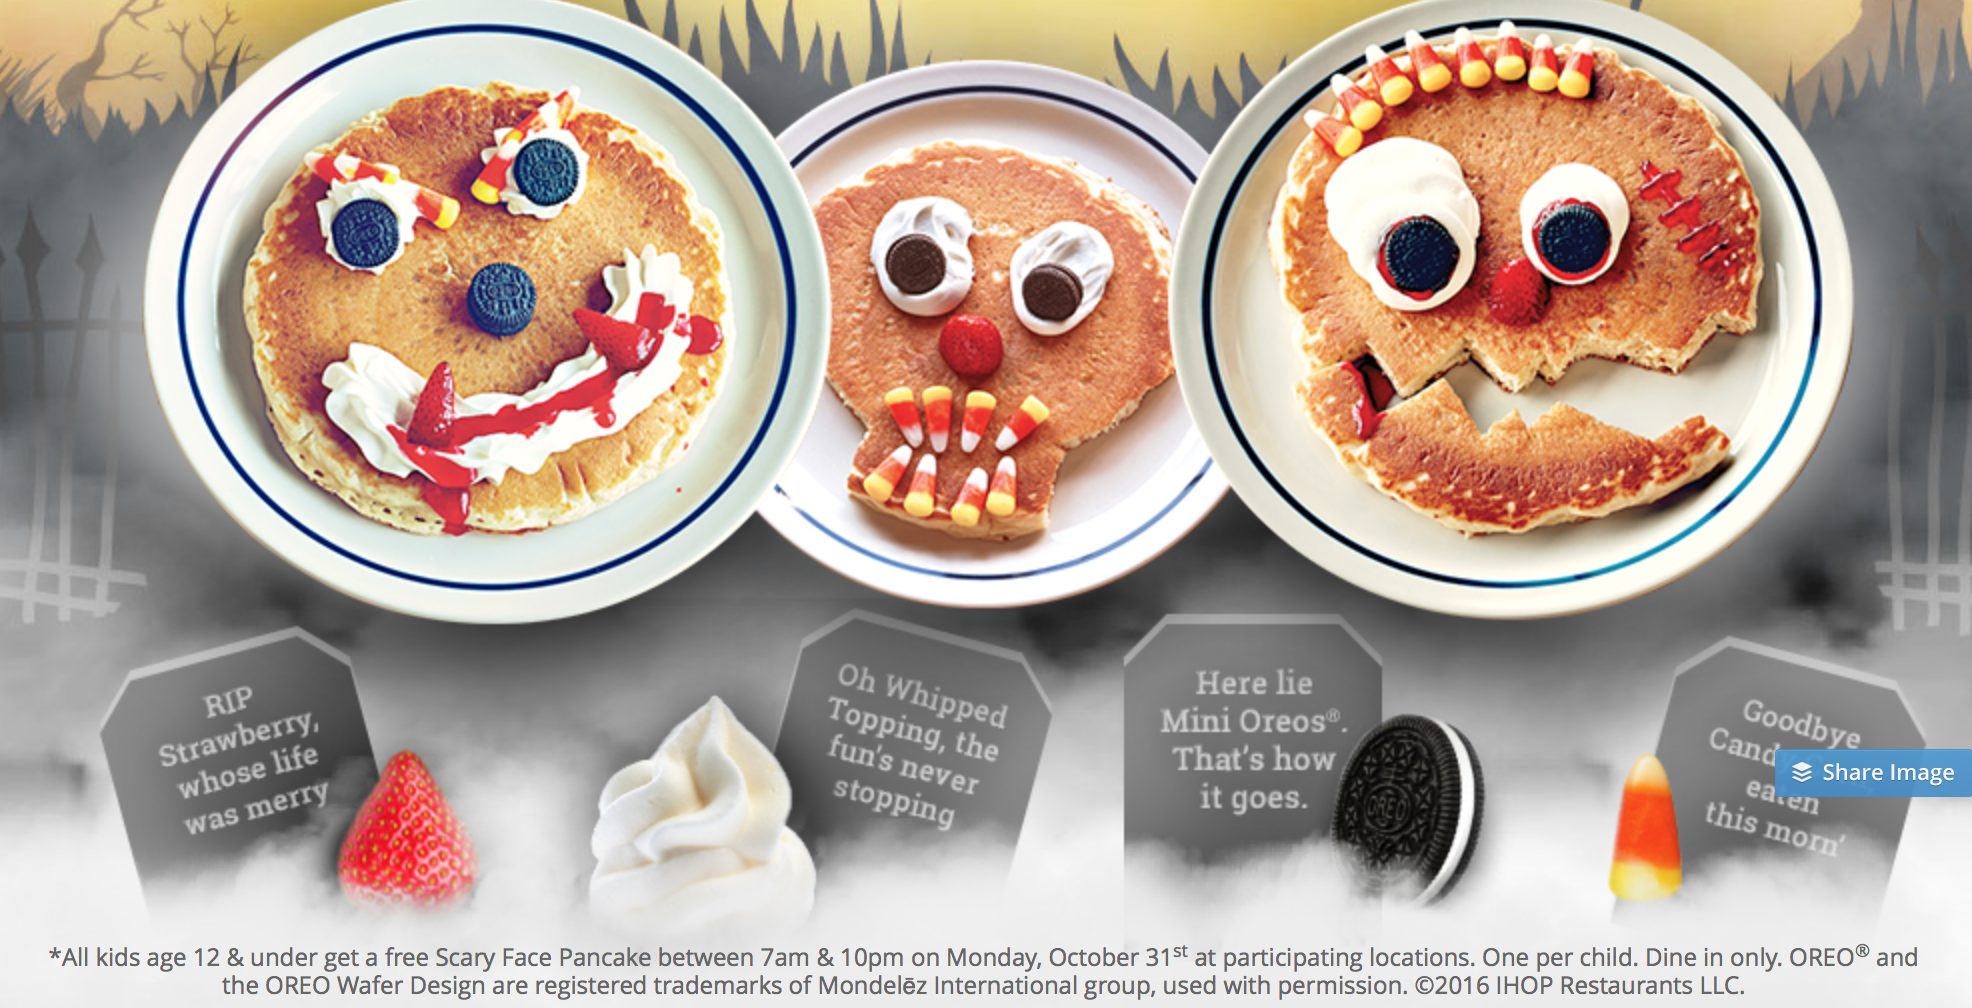 FREE Scary Face Pancakes At IHOP